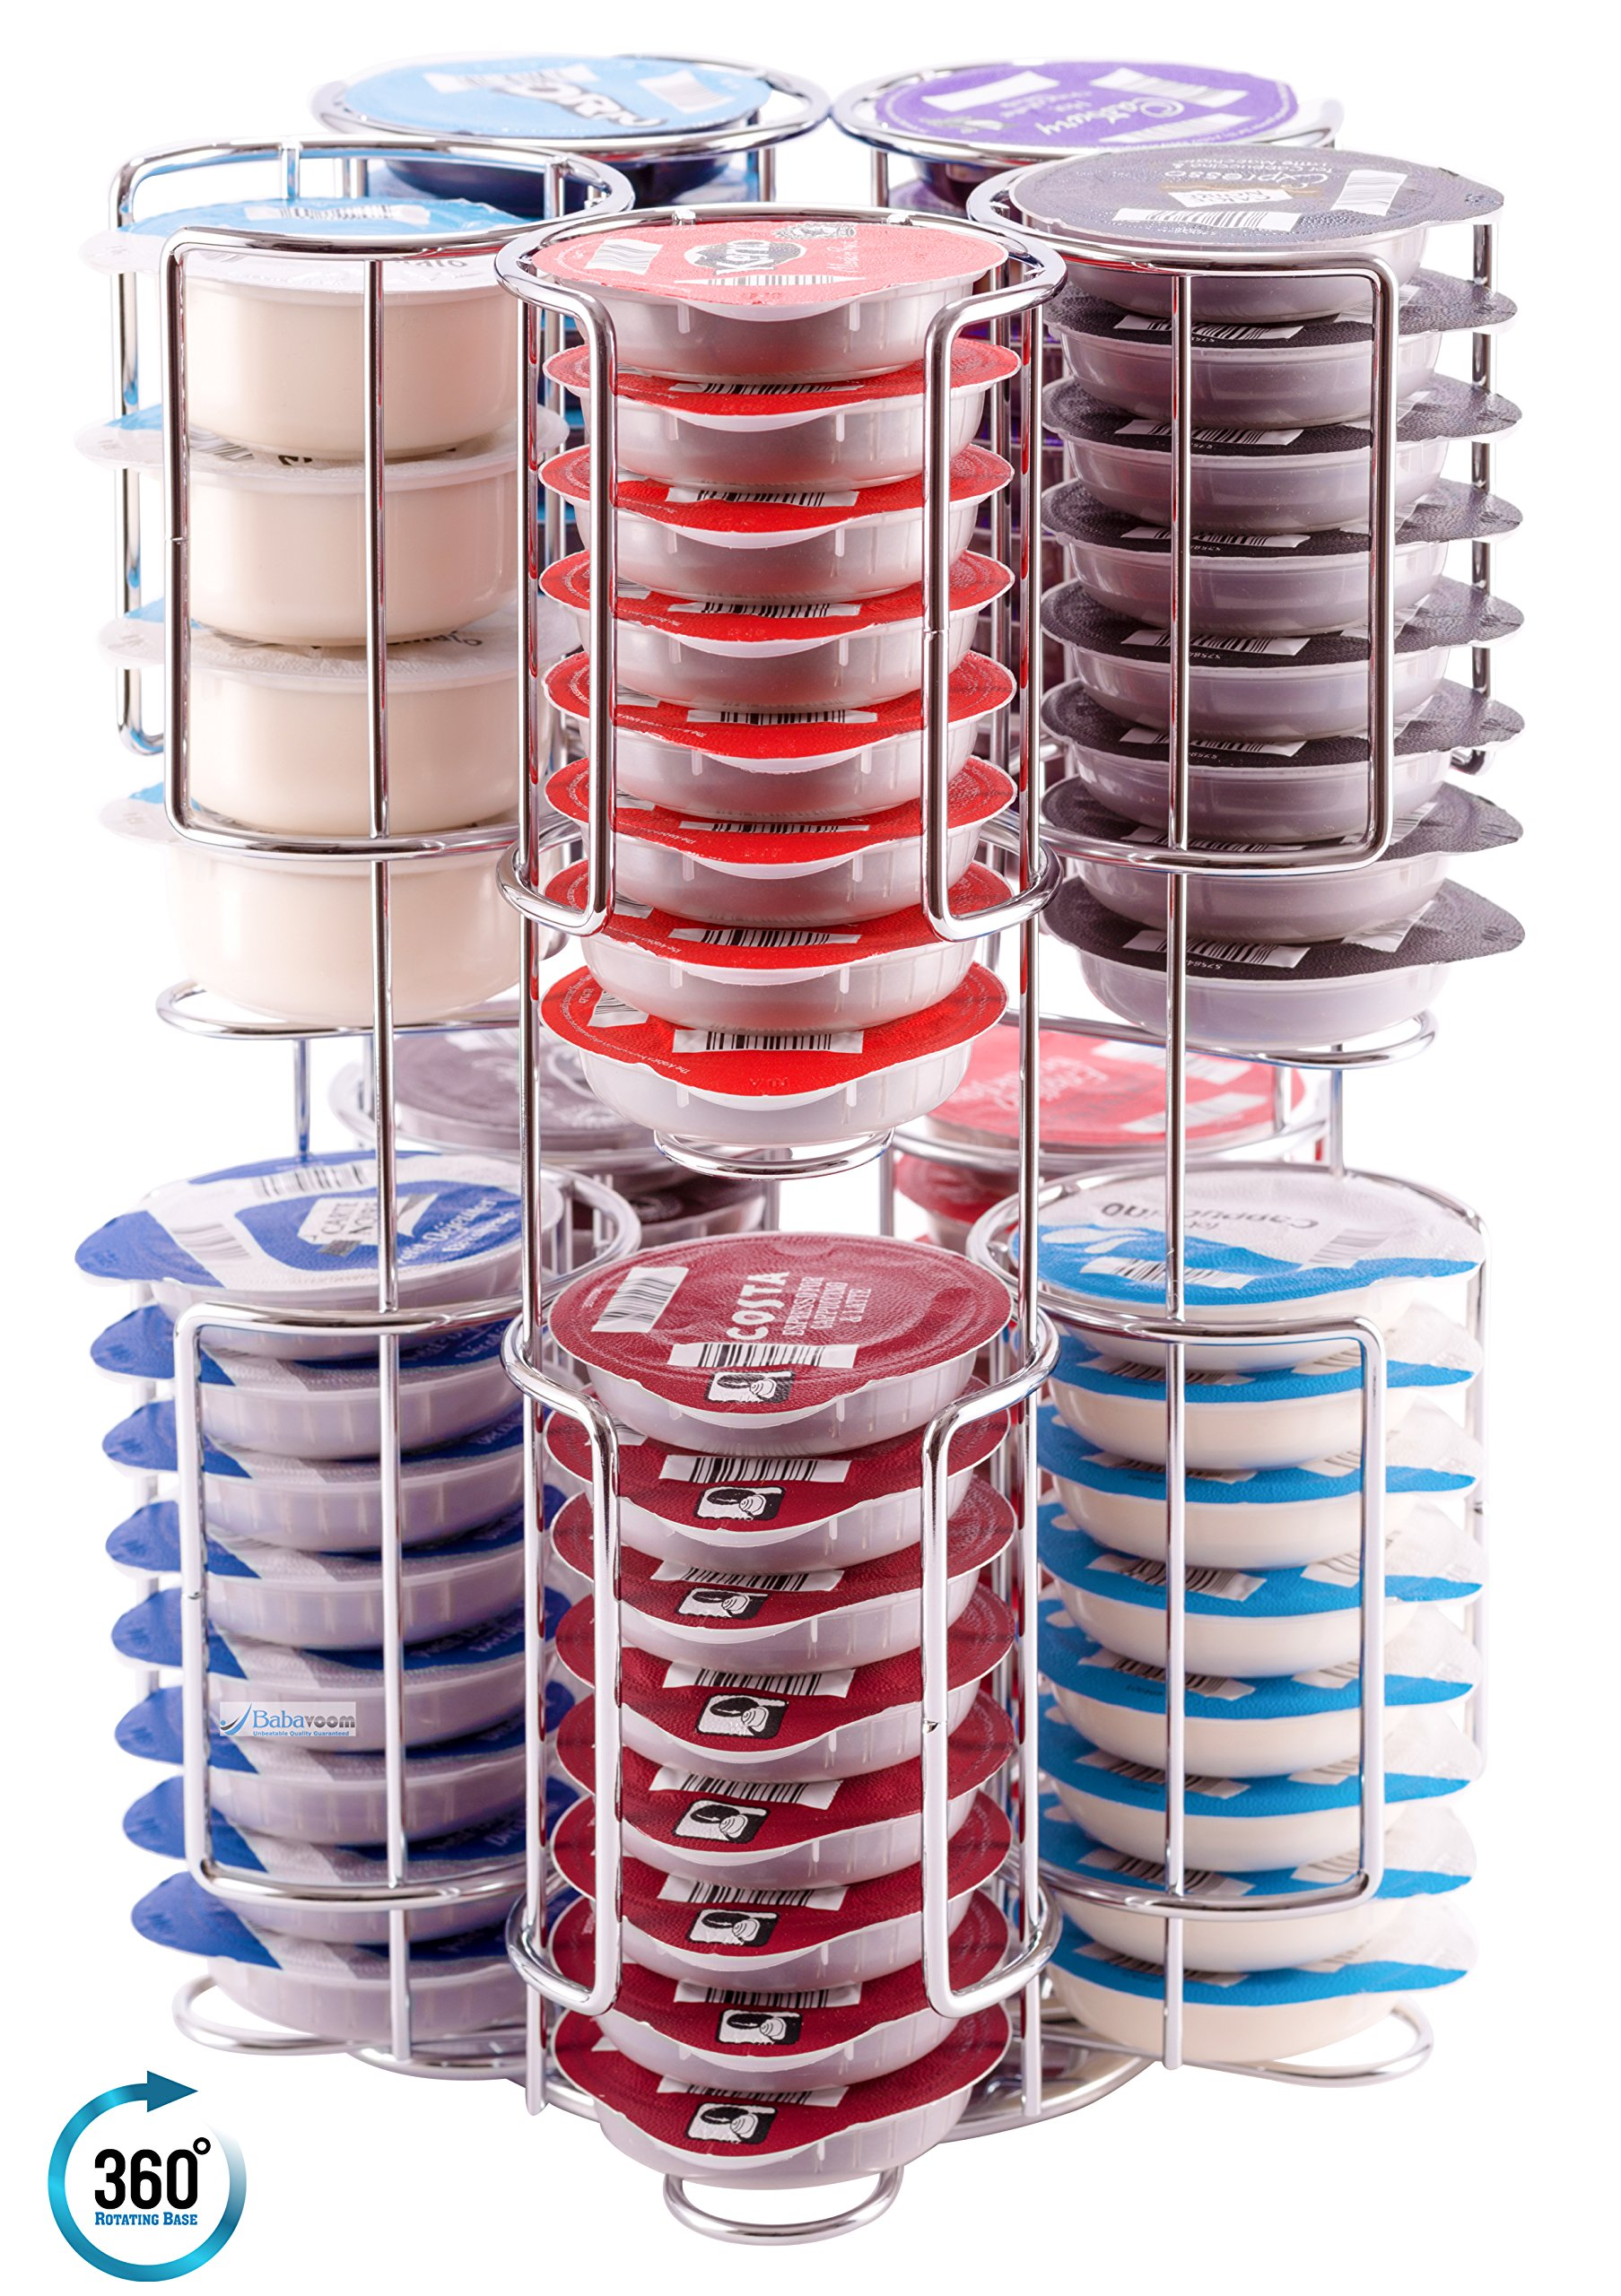 Tassimo Pod Holder Stores 80 Pods including Larger Milk Pods Rotating Base Unbeatable Quality Guaranteed Babavoom T80